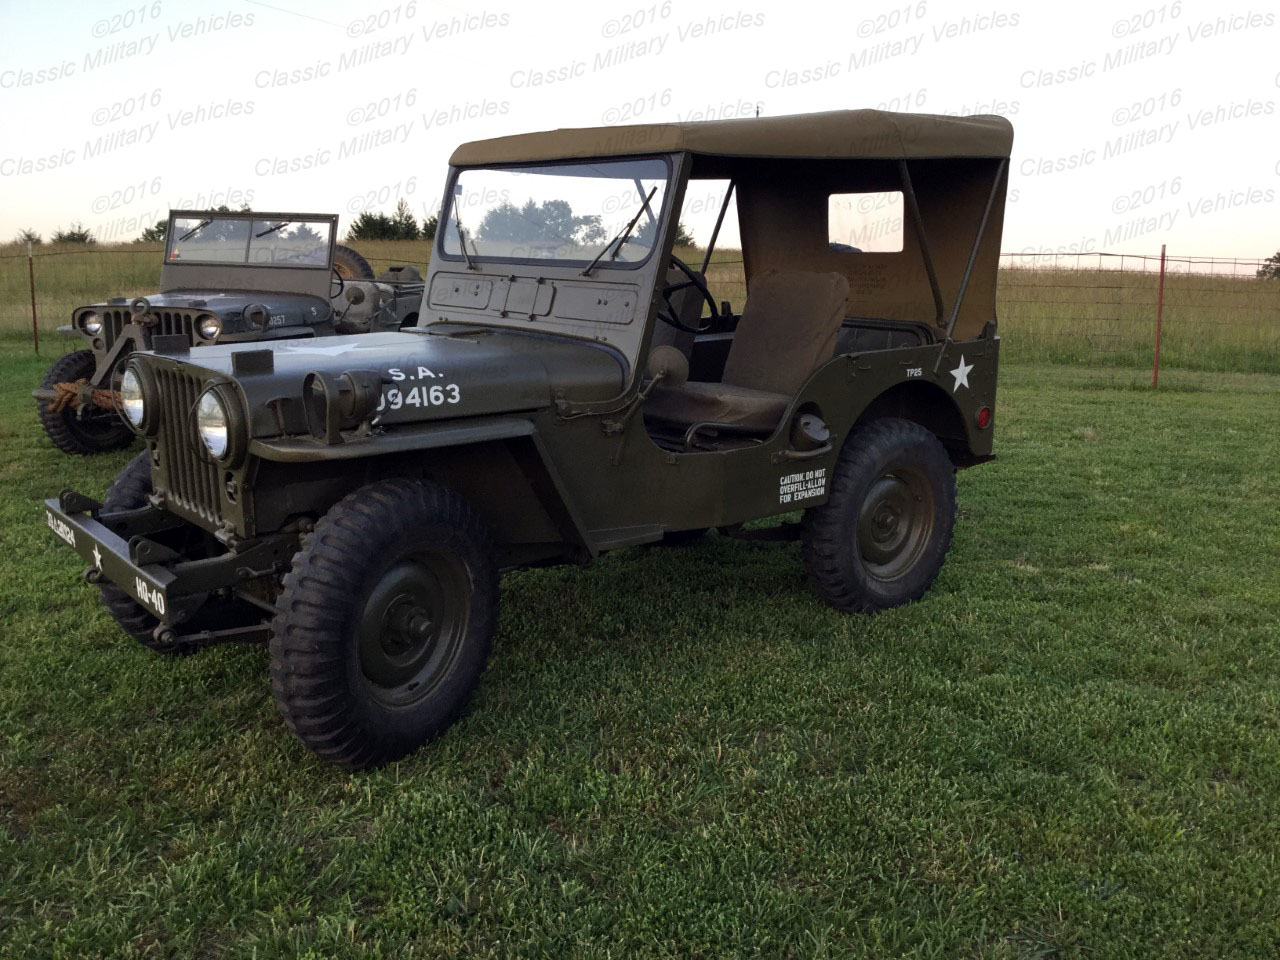 Military Vehicle Restoration Services Classic Military Vehicles